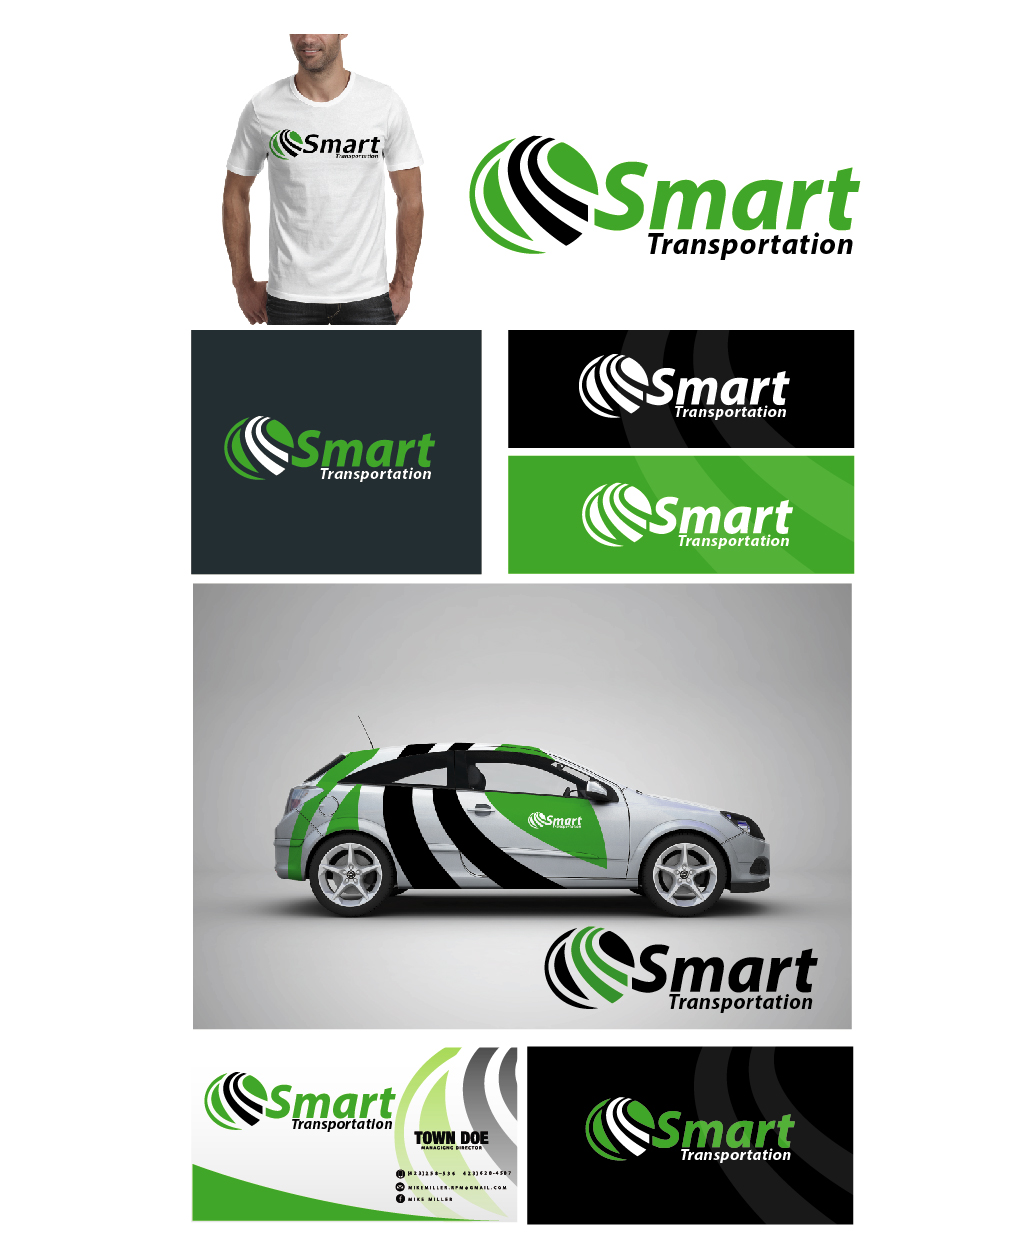 Logo Design by VENTSISLAV KOVACHEV - Entry No. 189 in the Logo Design Contest Imaginative Logo Design for Smart Transportation.